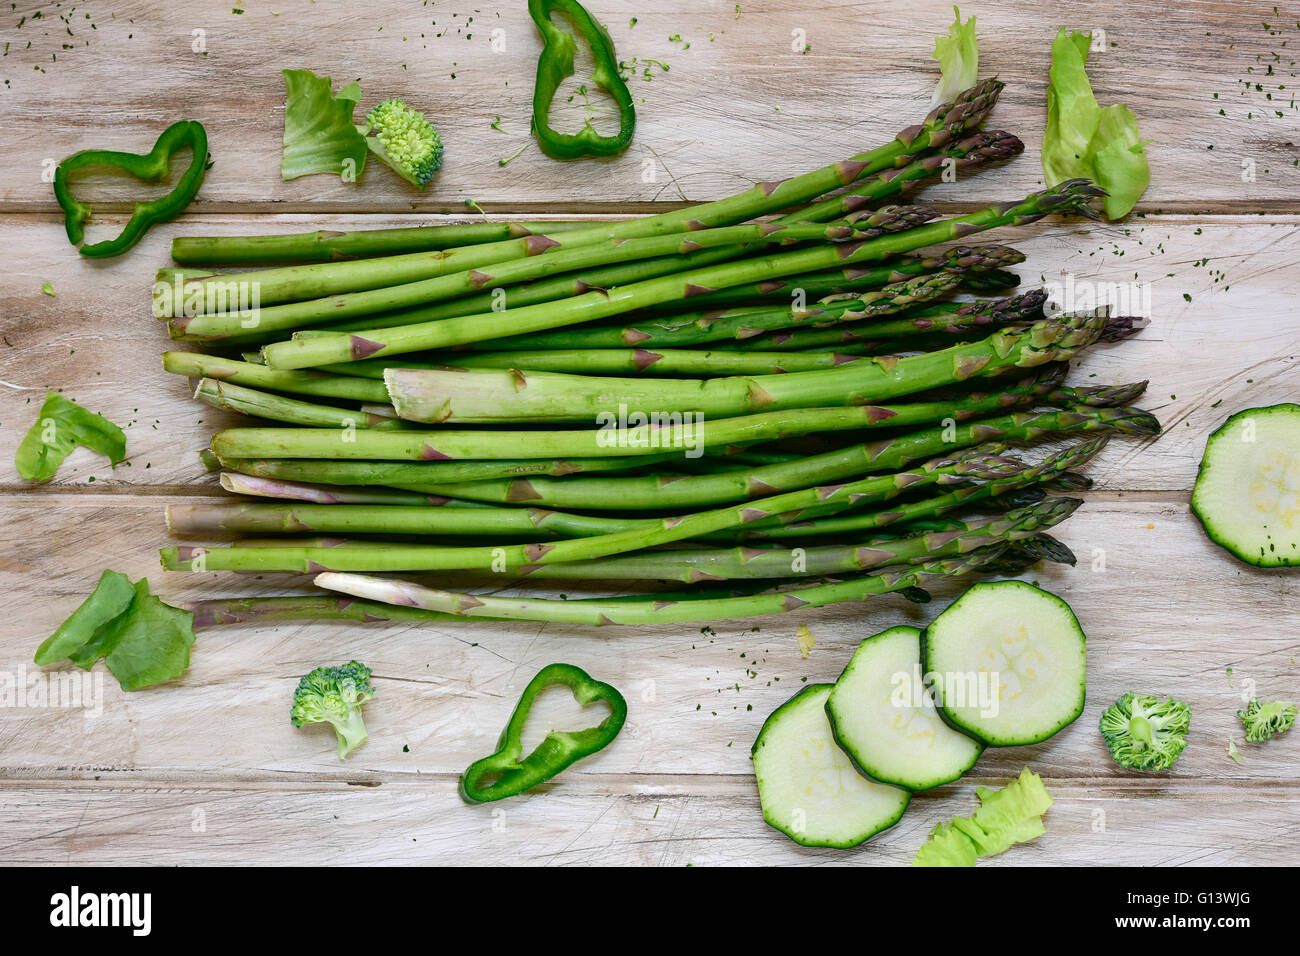 high-angle shot of some different raw green vegetables, such as green pepper, asparagus, broccoli or zucchini, on - Stock Image